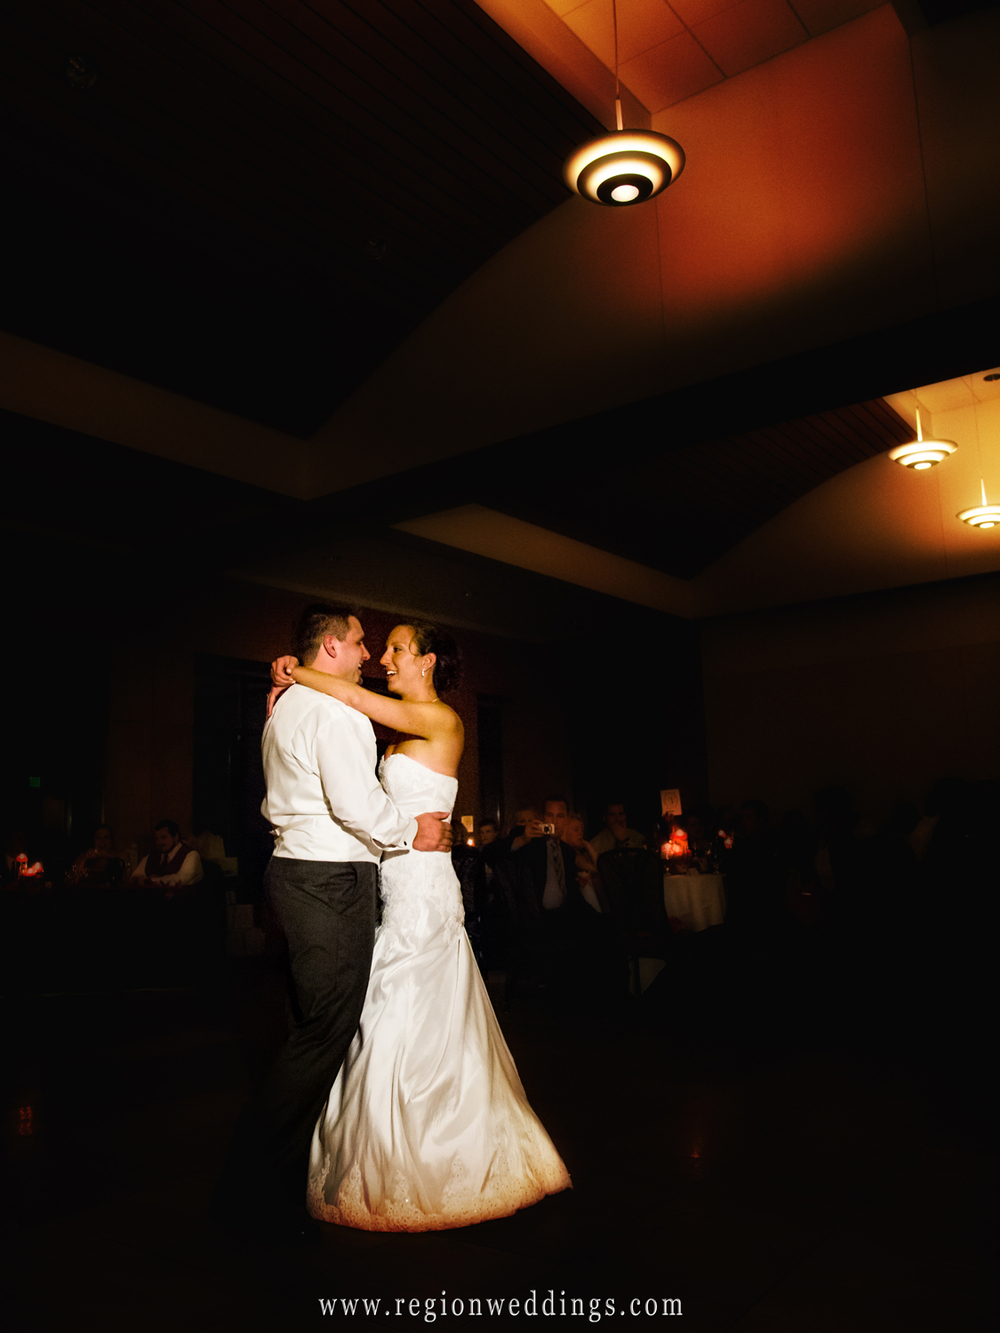 Centennial Park clubhouse is aglow in Fall colors during the first dance at a wedding reception during the Autumn months.